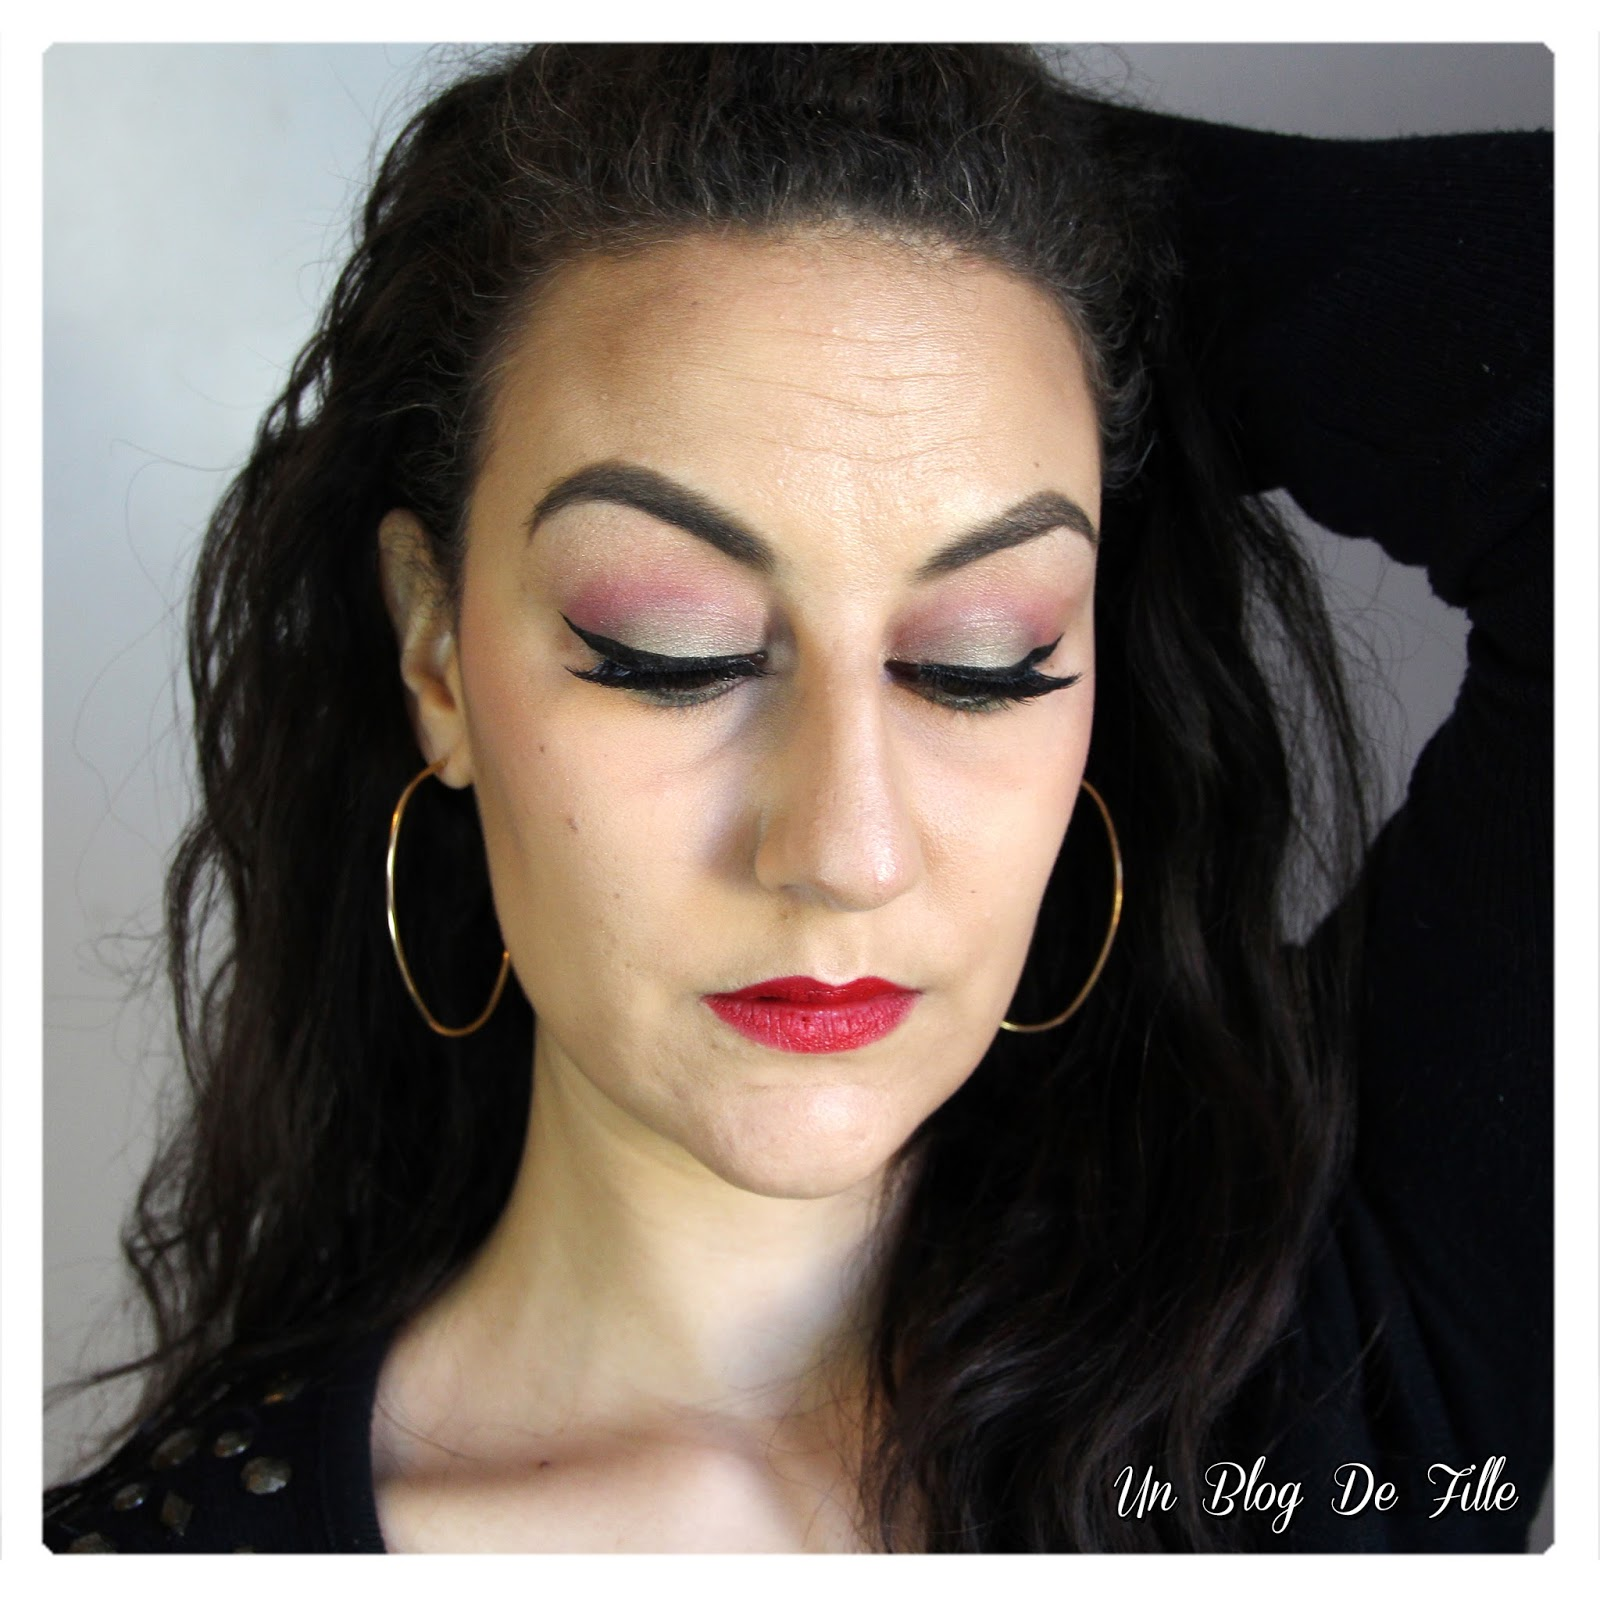 https://unblogdefille.blogspot.fr/2018/03/maquillage-rouge-et-kaki-msc.html